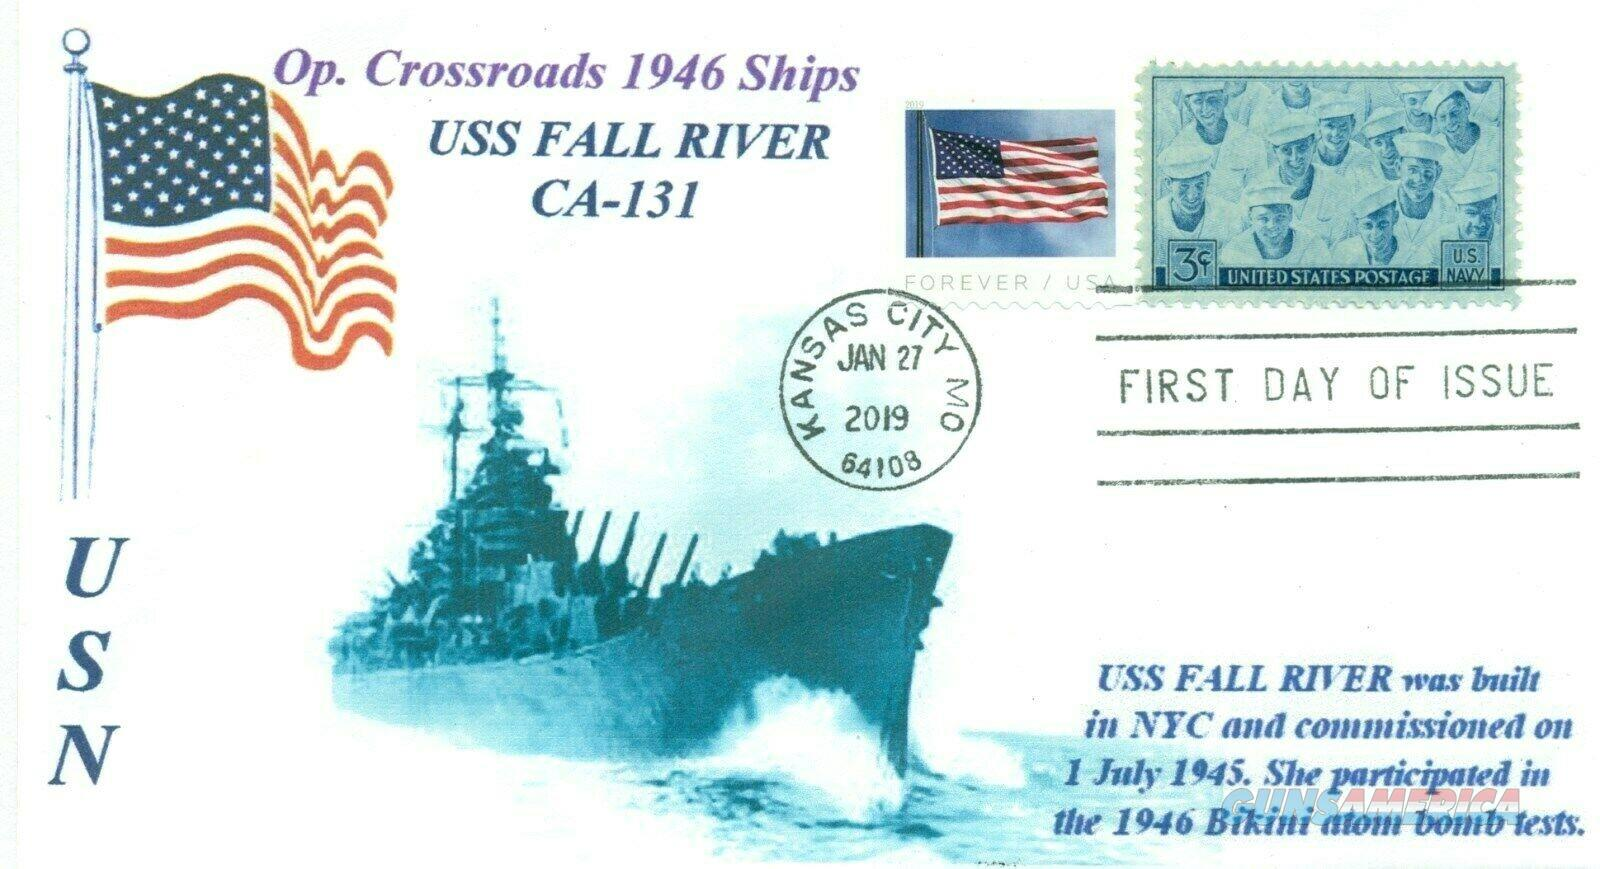 USS FALL RIVER CA-124 memorial naval first day cover with postmark   Non-Guns > Military > Memorabilia